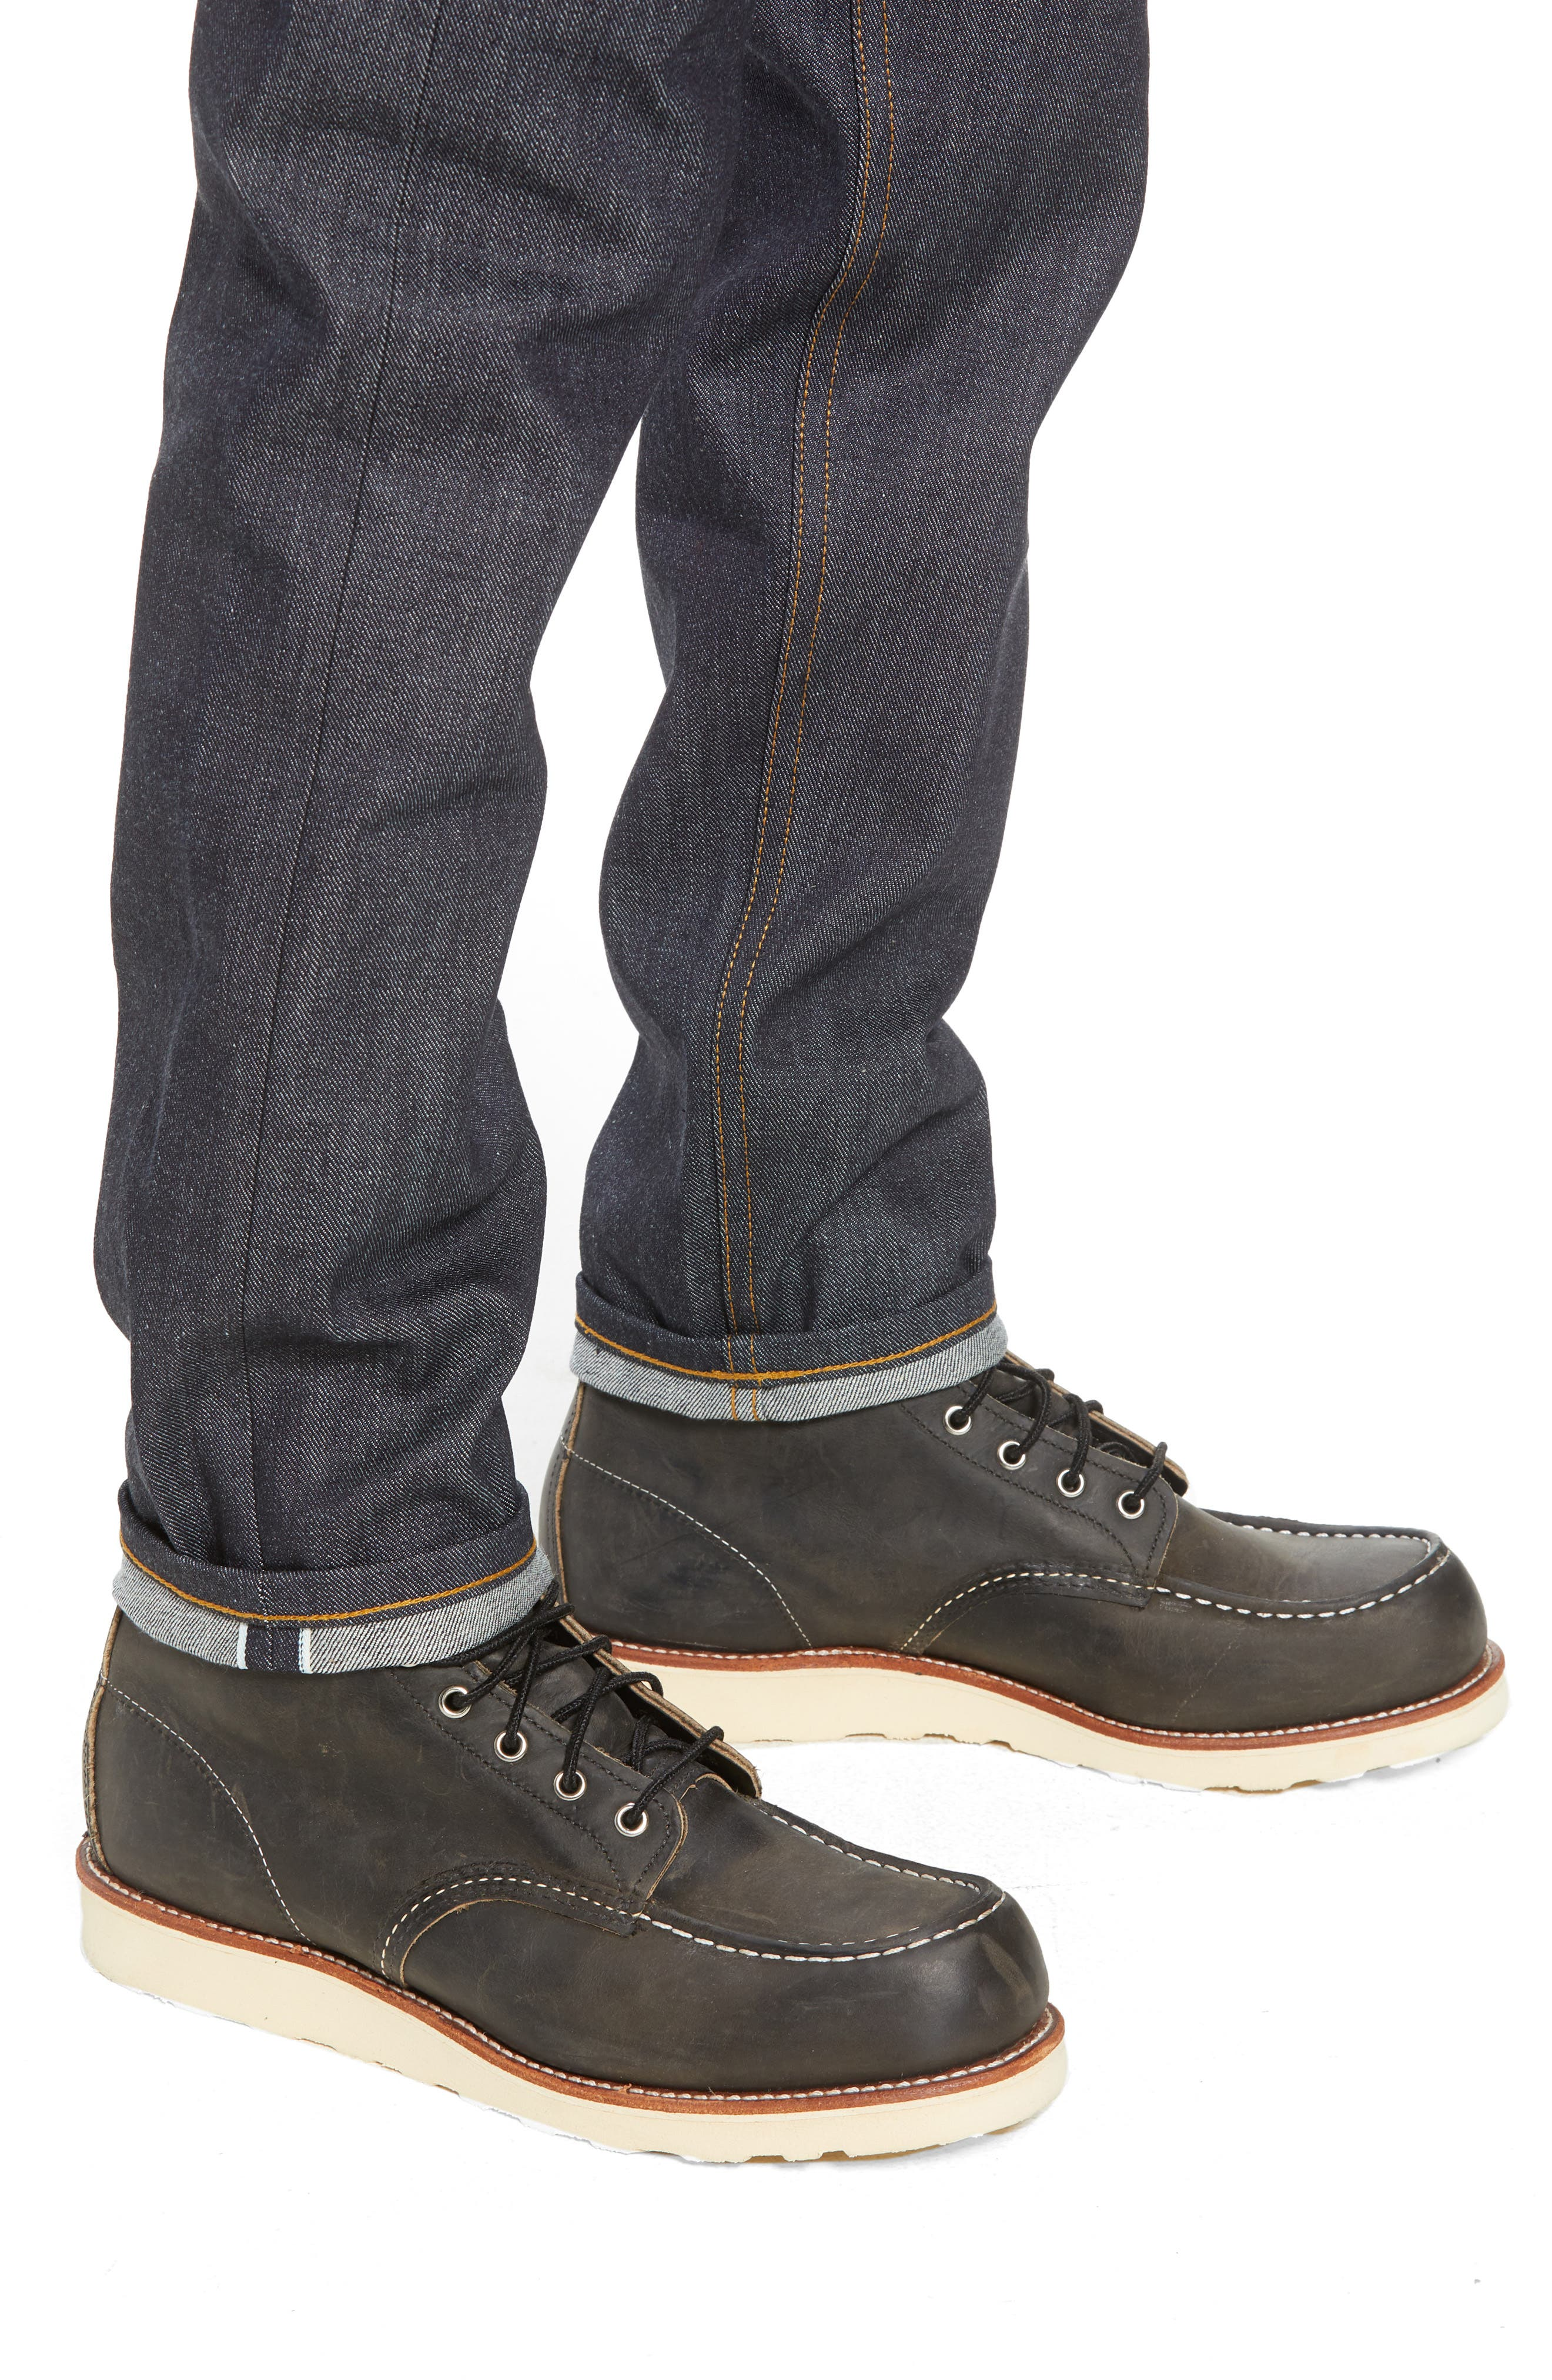 Easy Guy Skinny Fit Jeans,                             Alternate thumbnail 4, color,                             LEFT HAND TWILL SELVEDGE